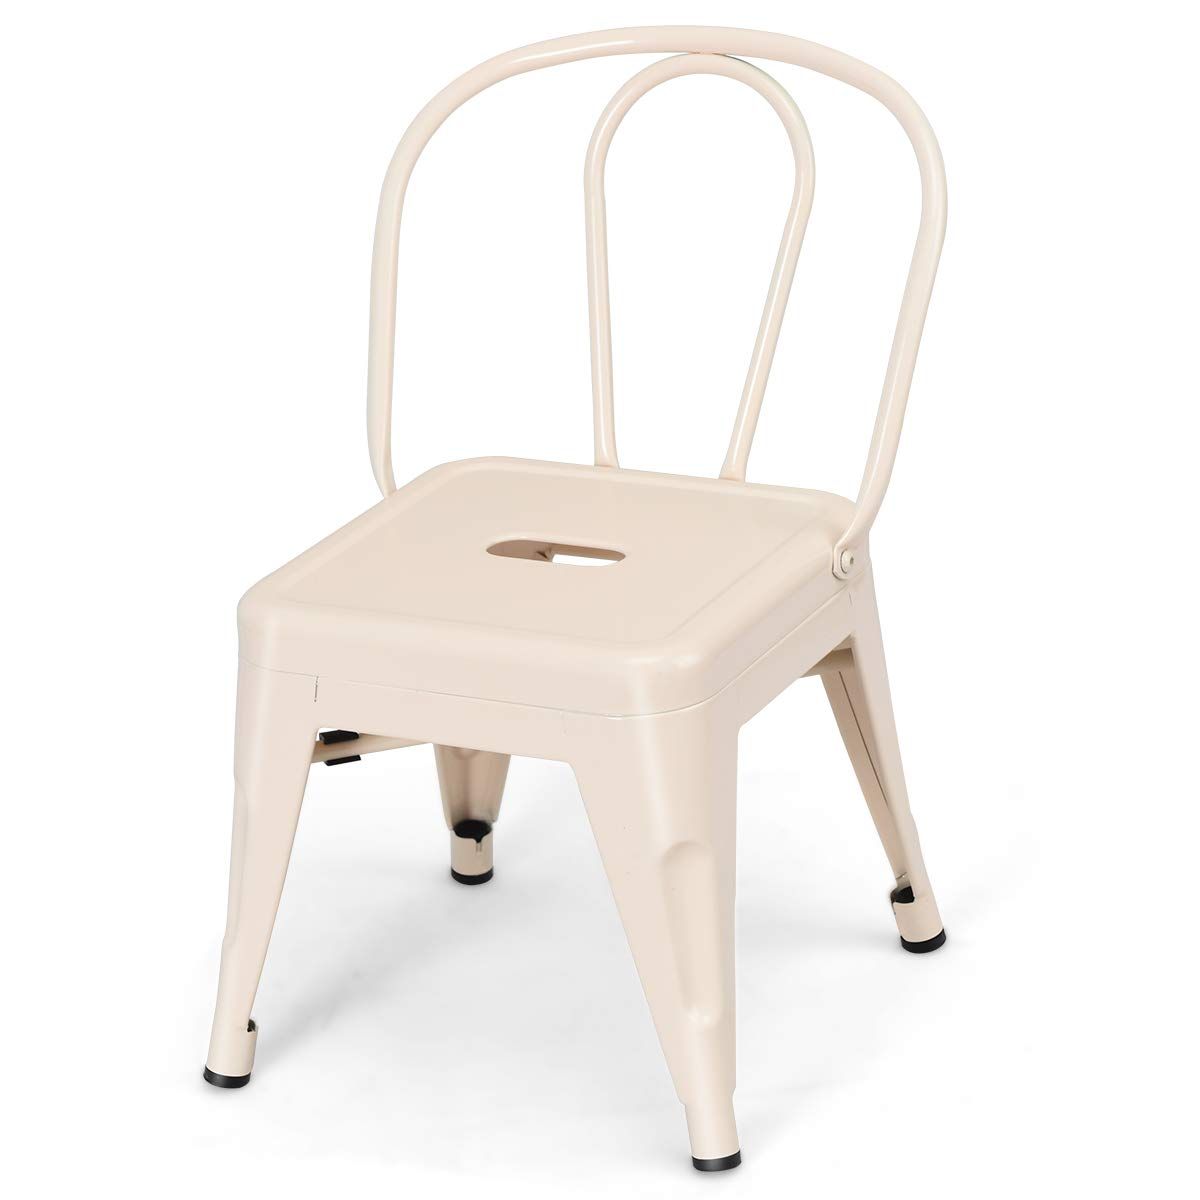 Costzon High Back Kids Metal Stool, Contour School Student Chair, Stackable for Indoor/Outdoor,Preschool, Daycare, Playroom, Nursery Seat, Iron Furniture Stool for Boys, Girls (Milky White) by Costzon